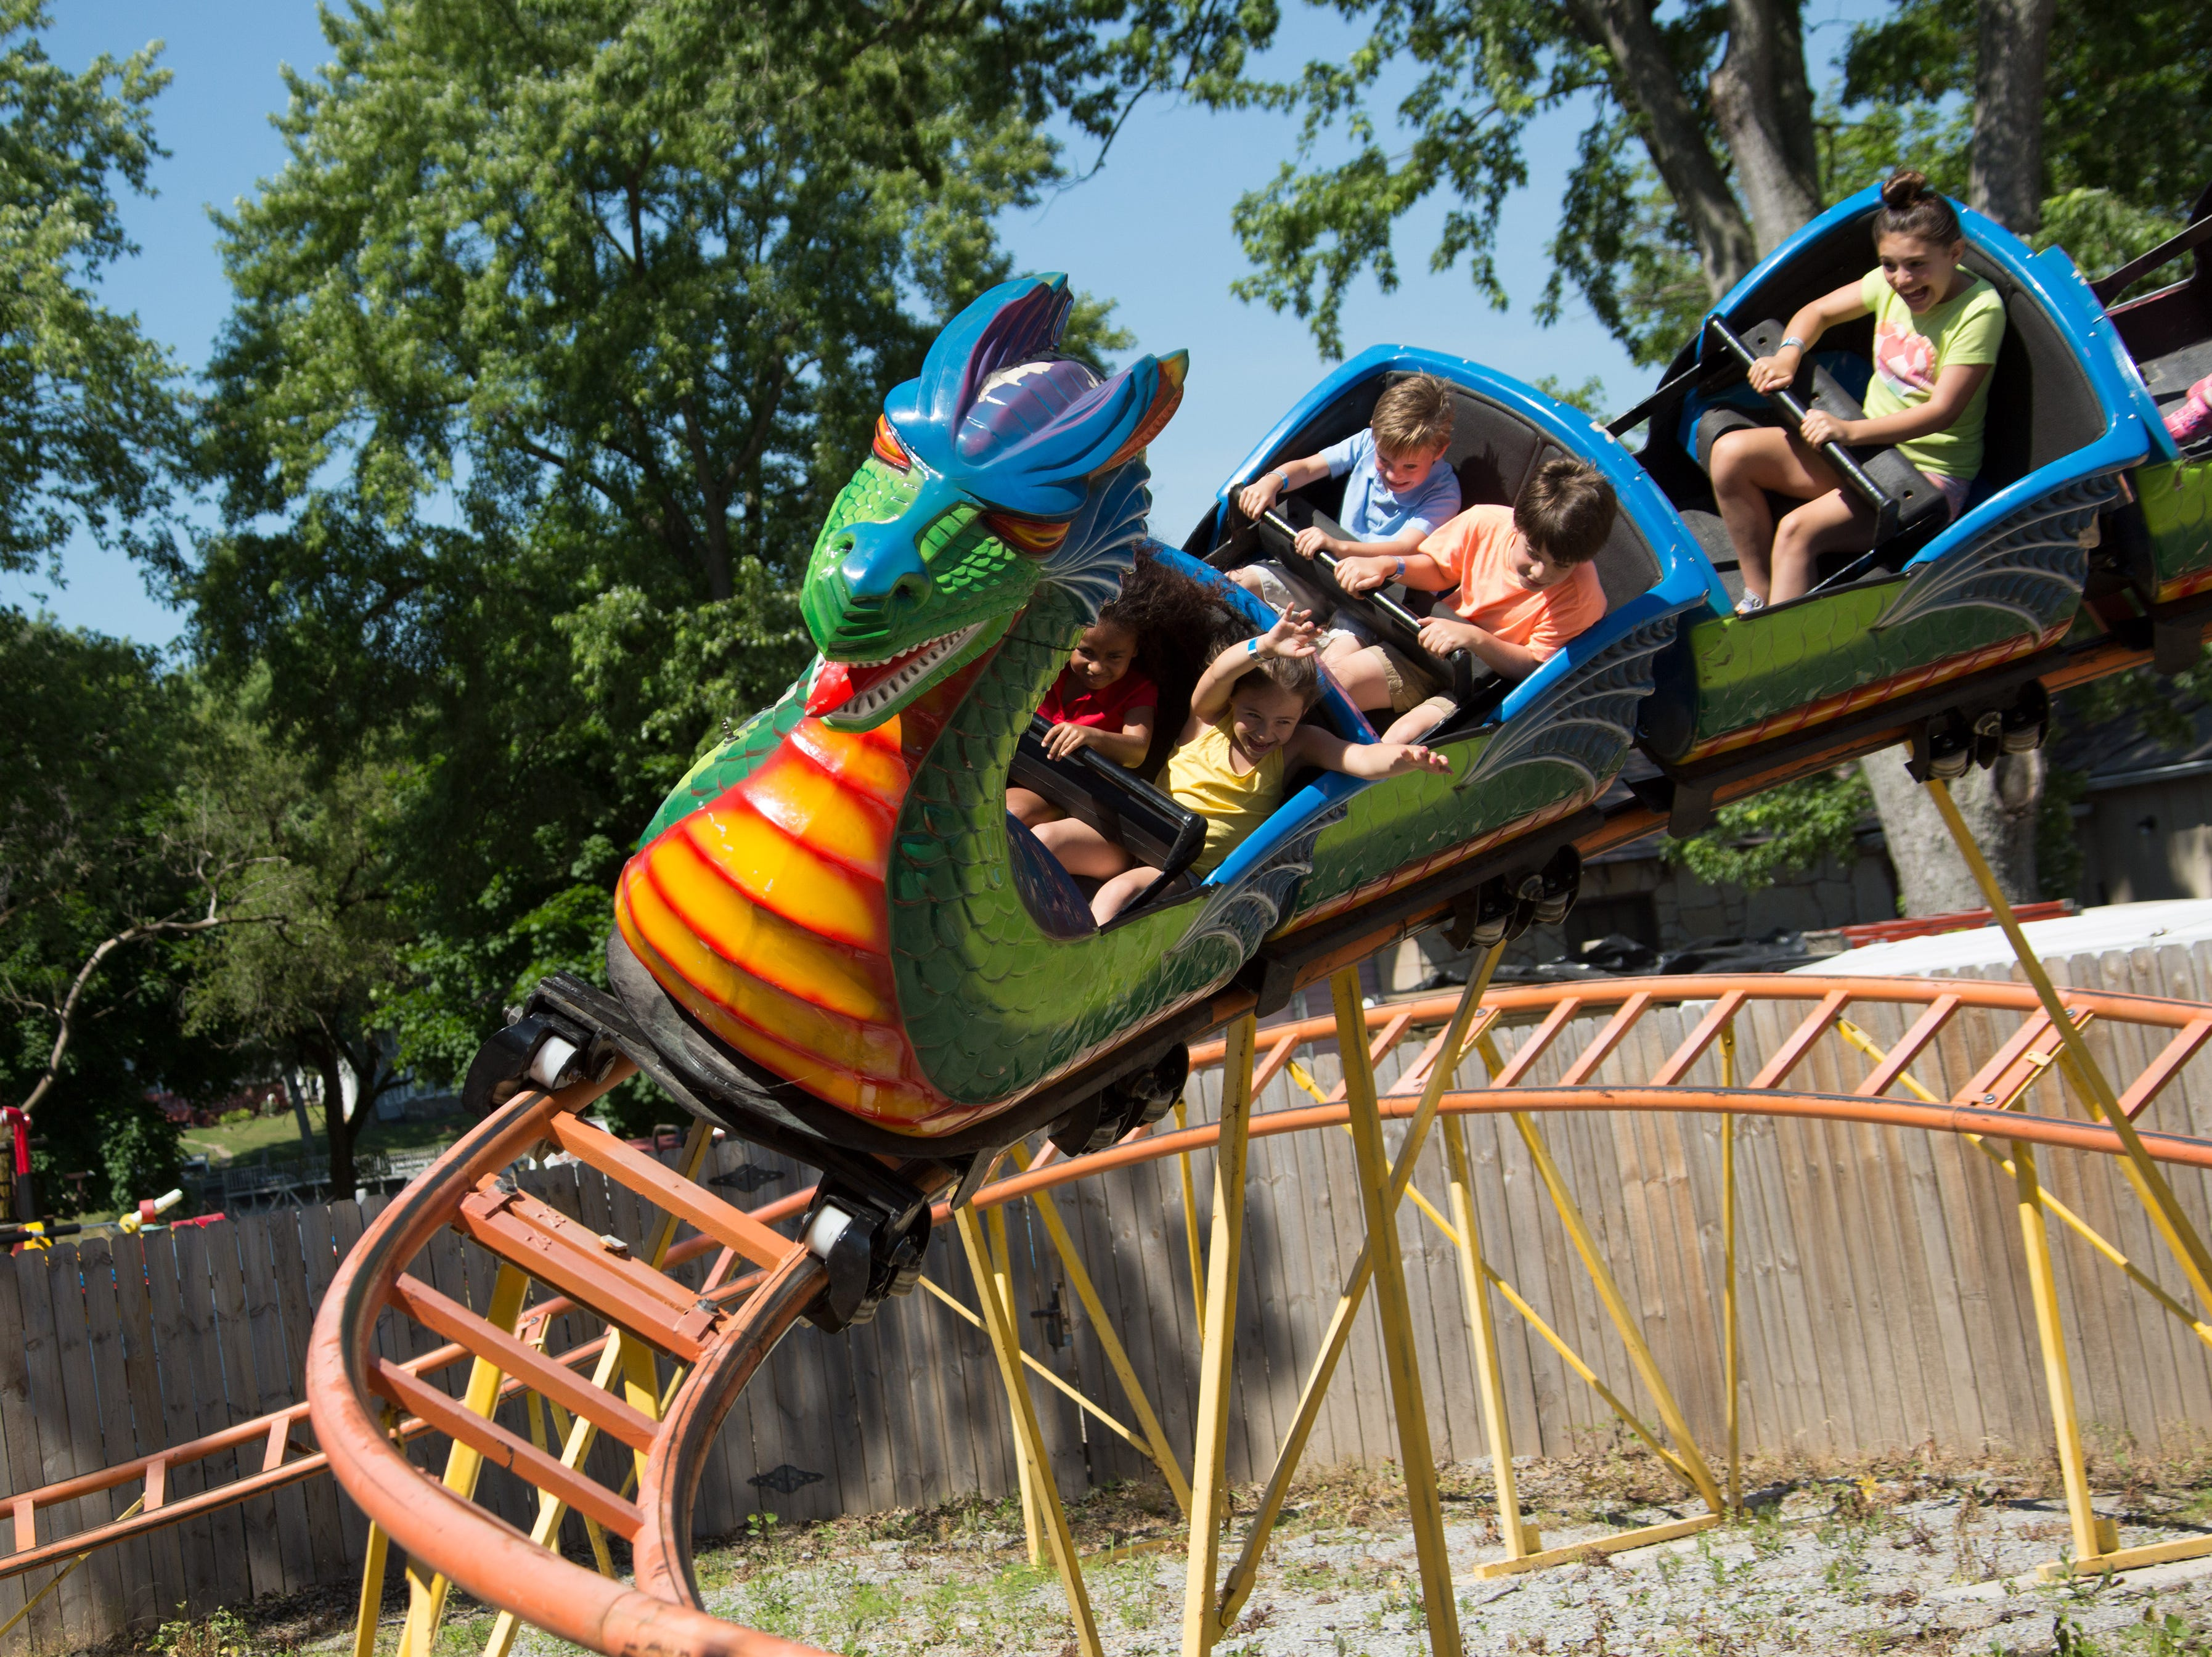 The Dragon Coaster is a family-friendly ride with a just thrilling enough drop.